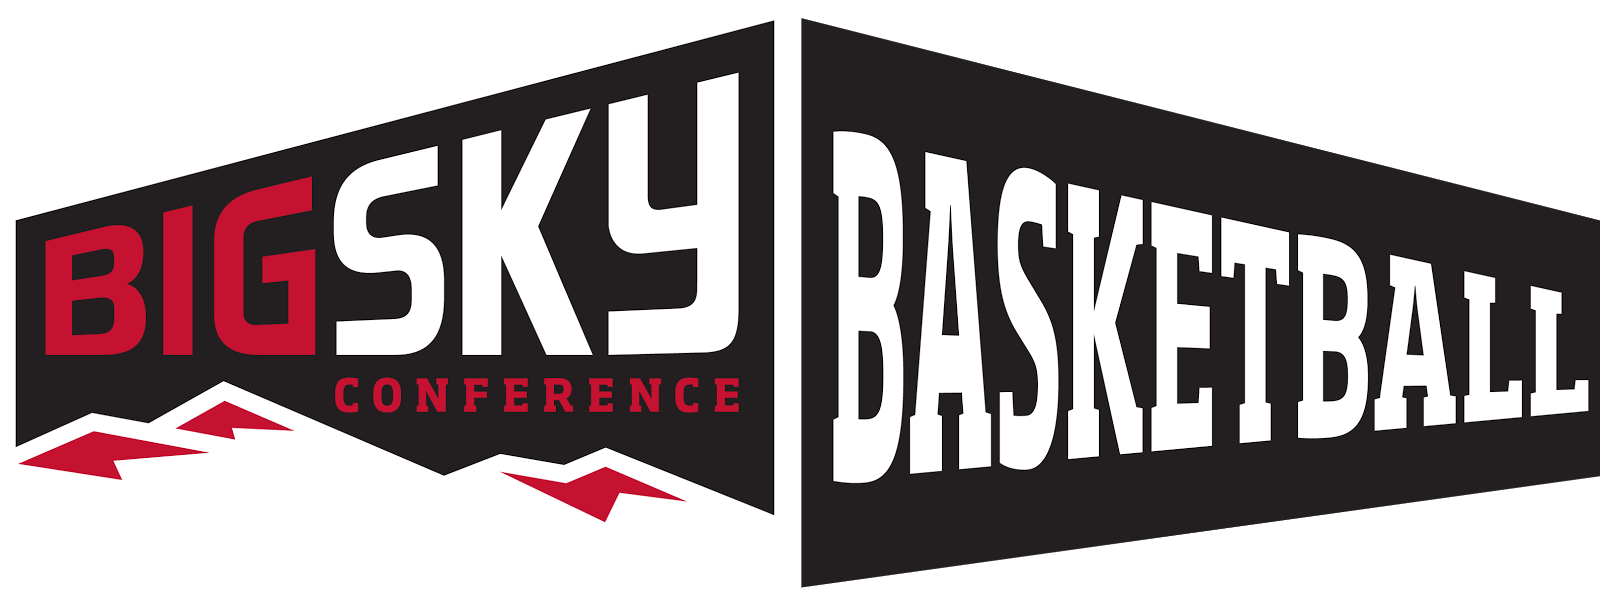 BIG SKY BASKETBALL